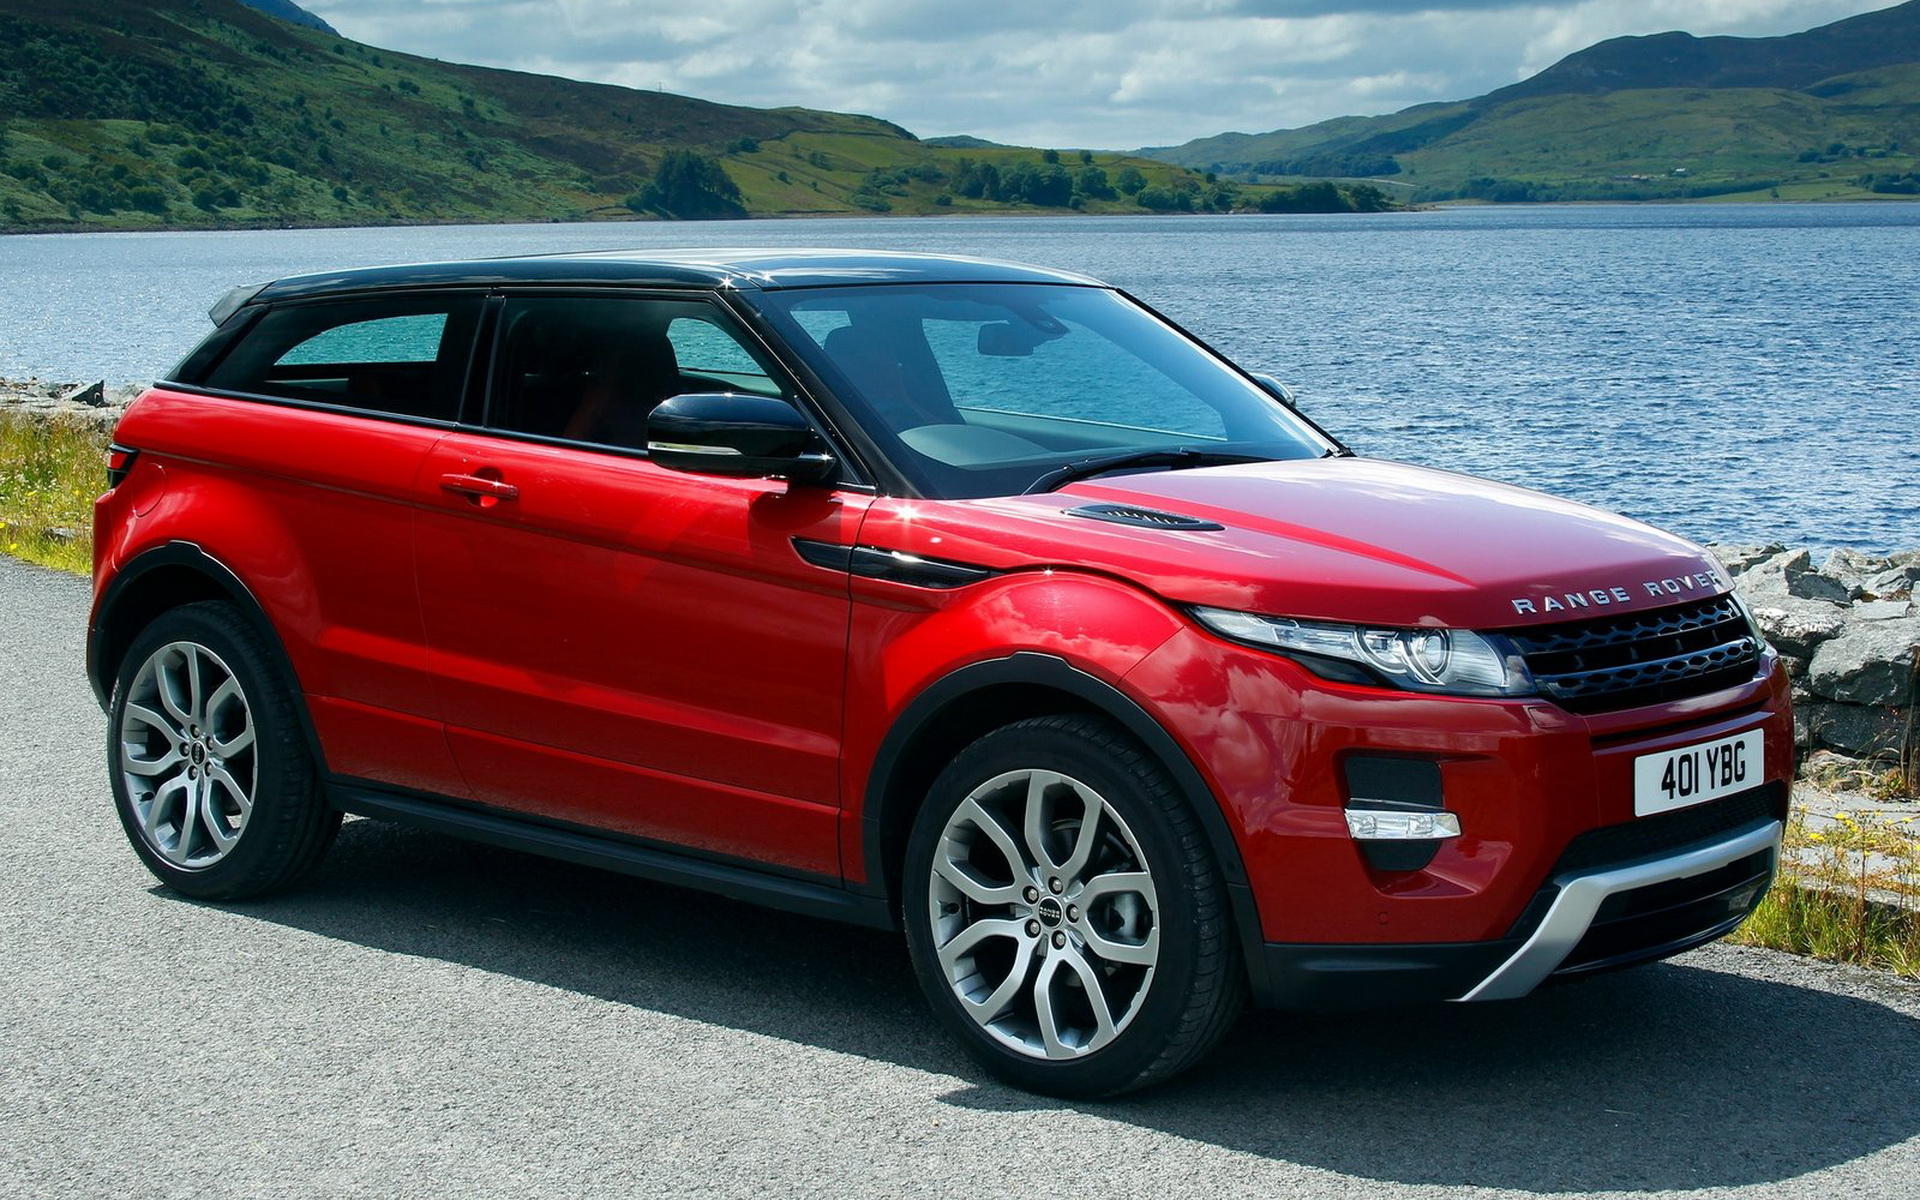 land rover range rover evoque images #3